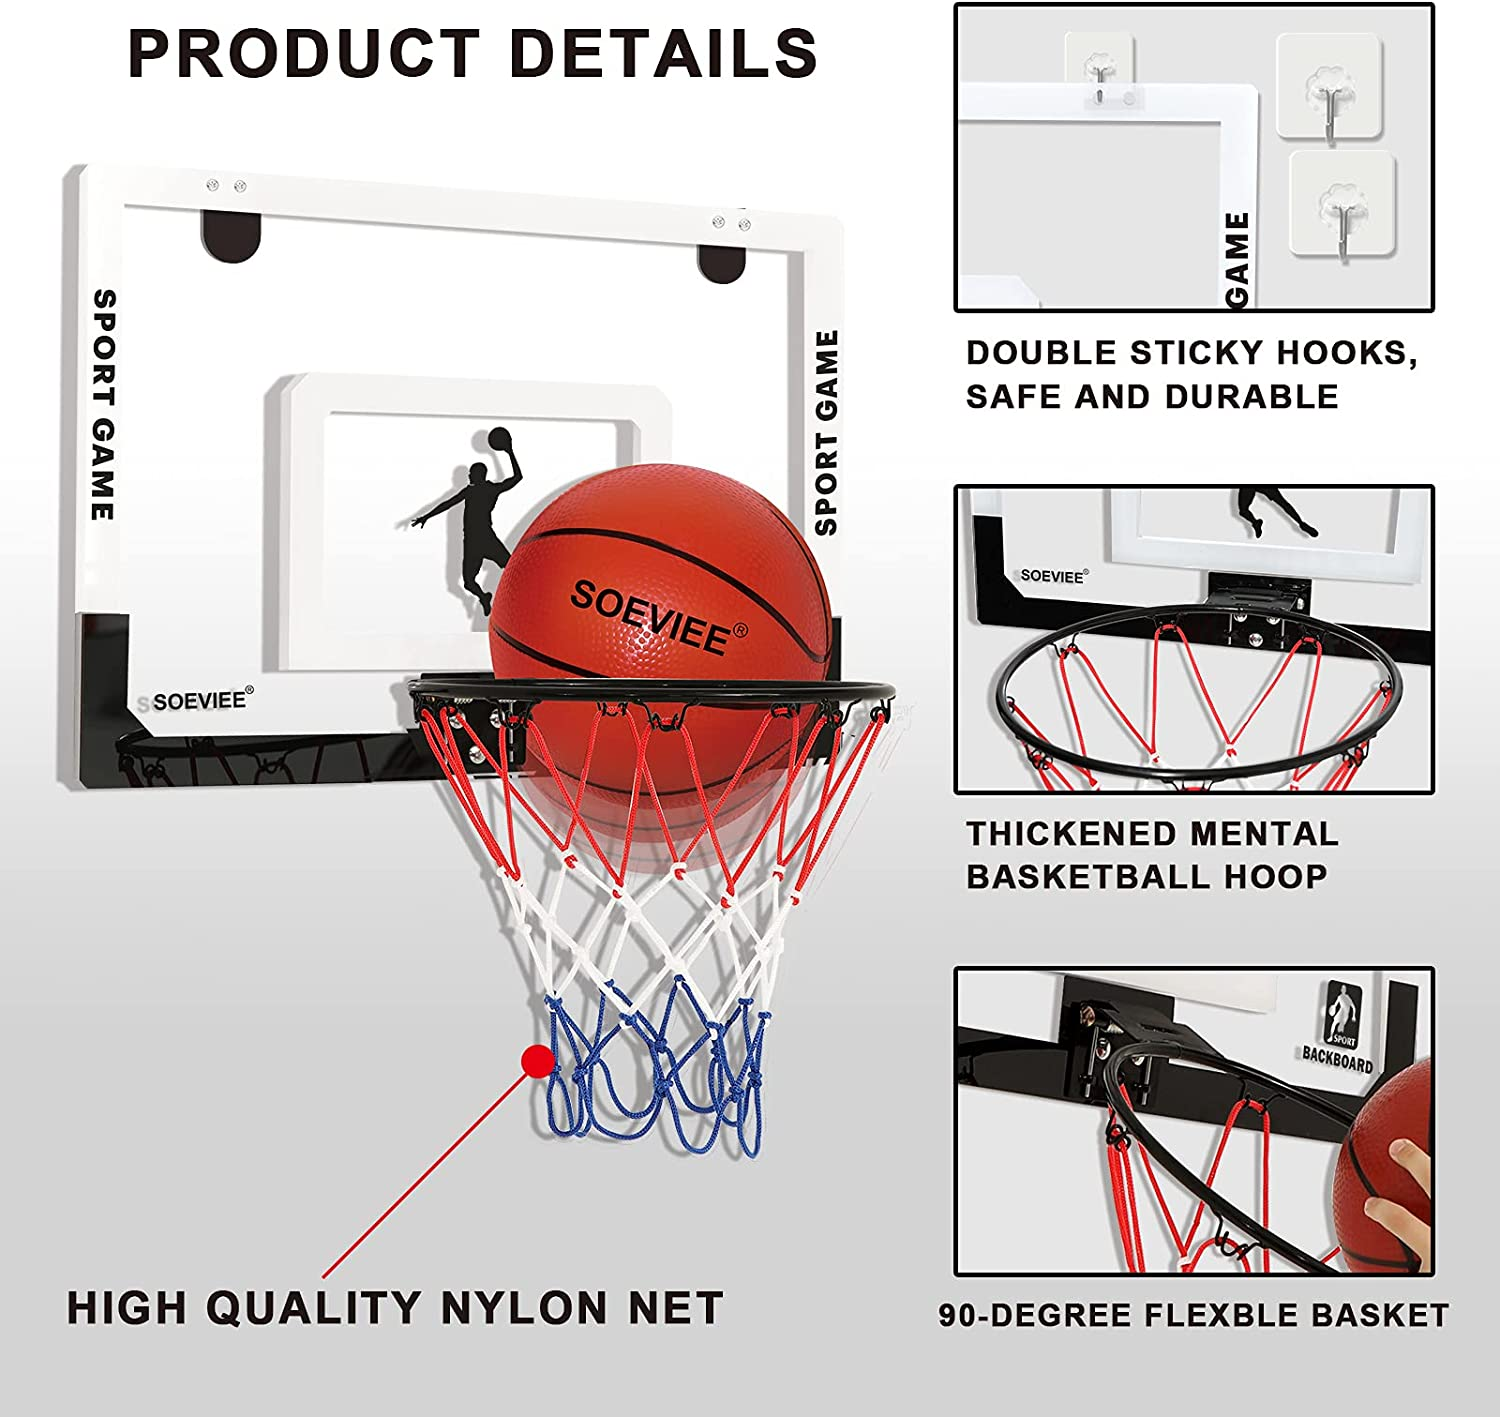 Large Indoor Basketball Hoop for Kids & Adult 23 X 16 Inch Board with 3 Balls and 2 Nylon net Over The Door & Wall Mount Indoor with Complete Basketball Accessories Perfect Christmas & Birthday Gifts : Sports & Outdoors